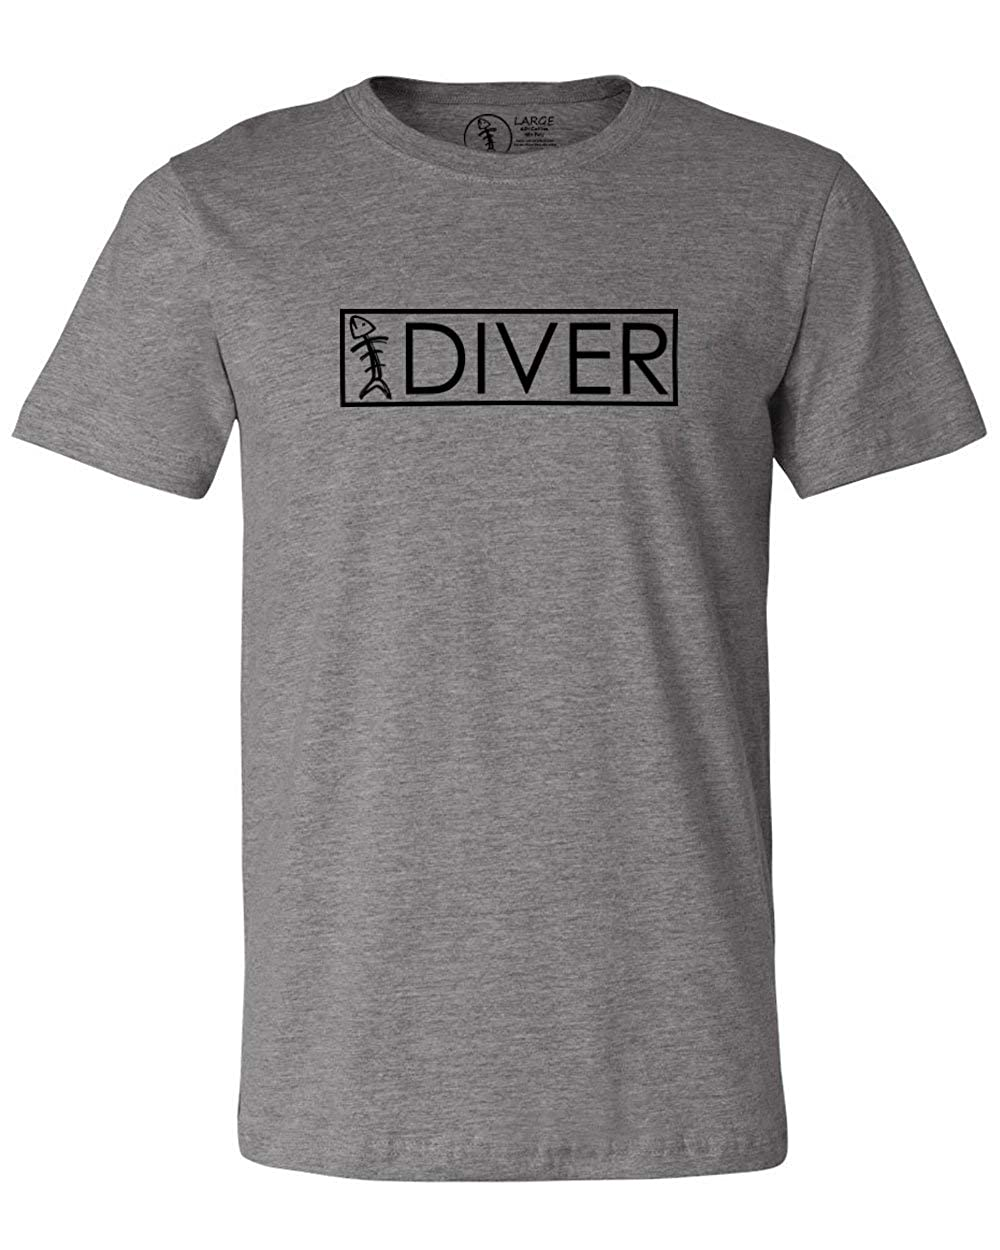 Speared Spearfishing Shirt Diver